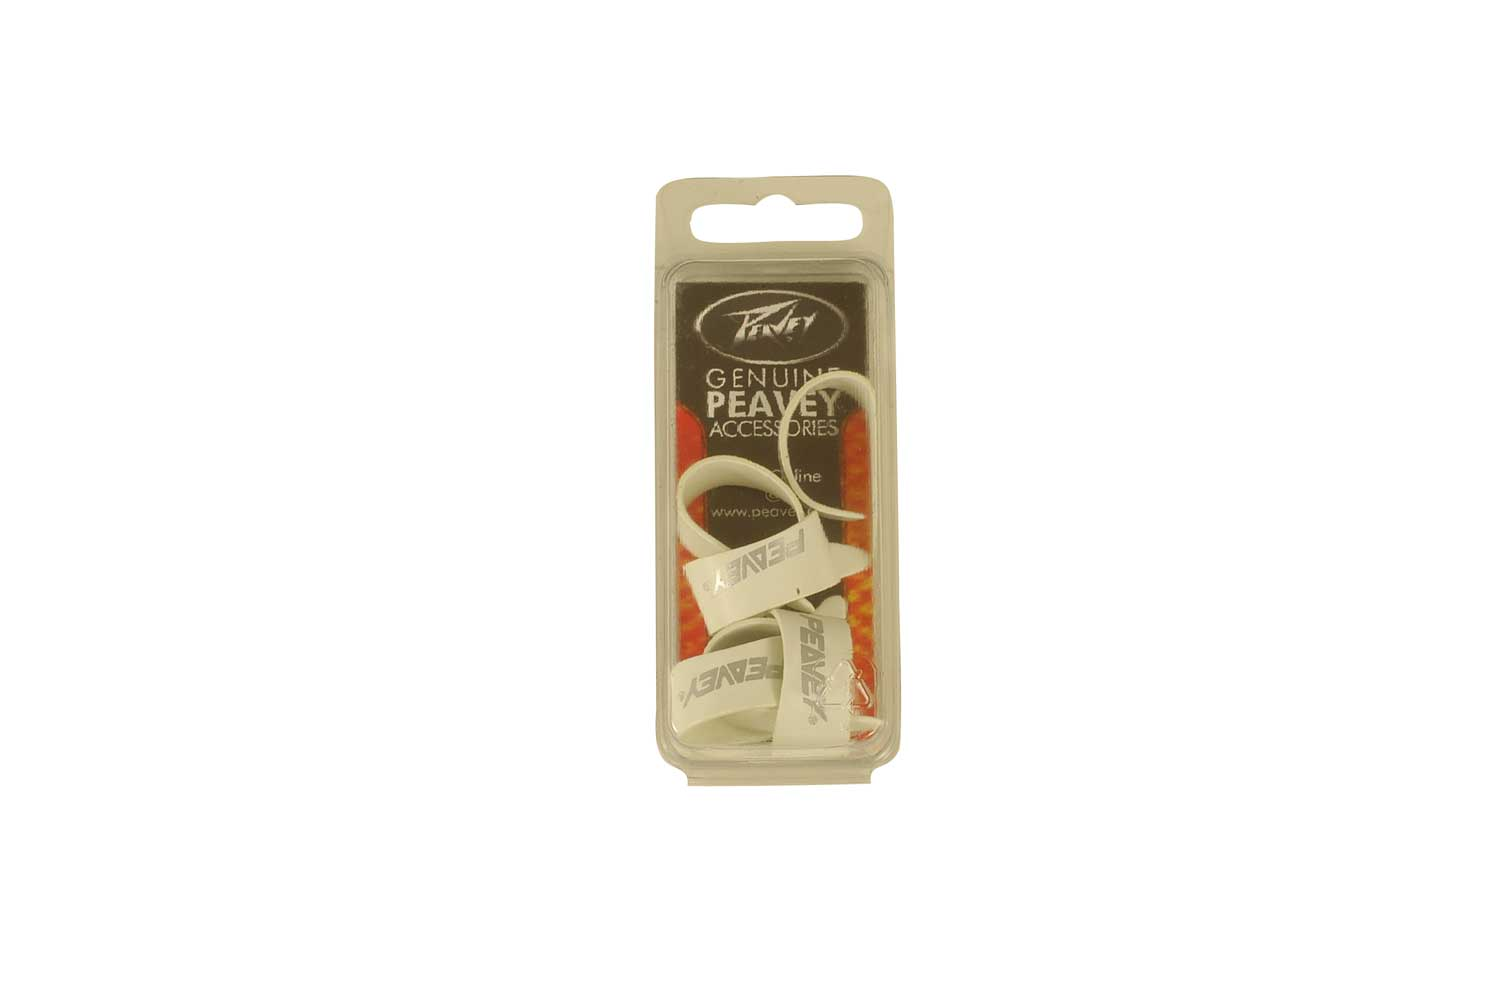 Peavey Top Performance Thumb 371 Medium - White Thumb Pick Refill (479800)